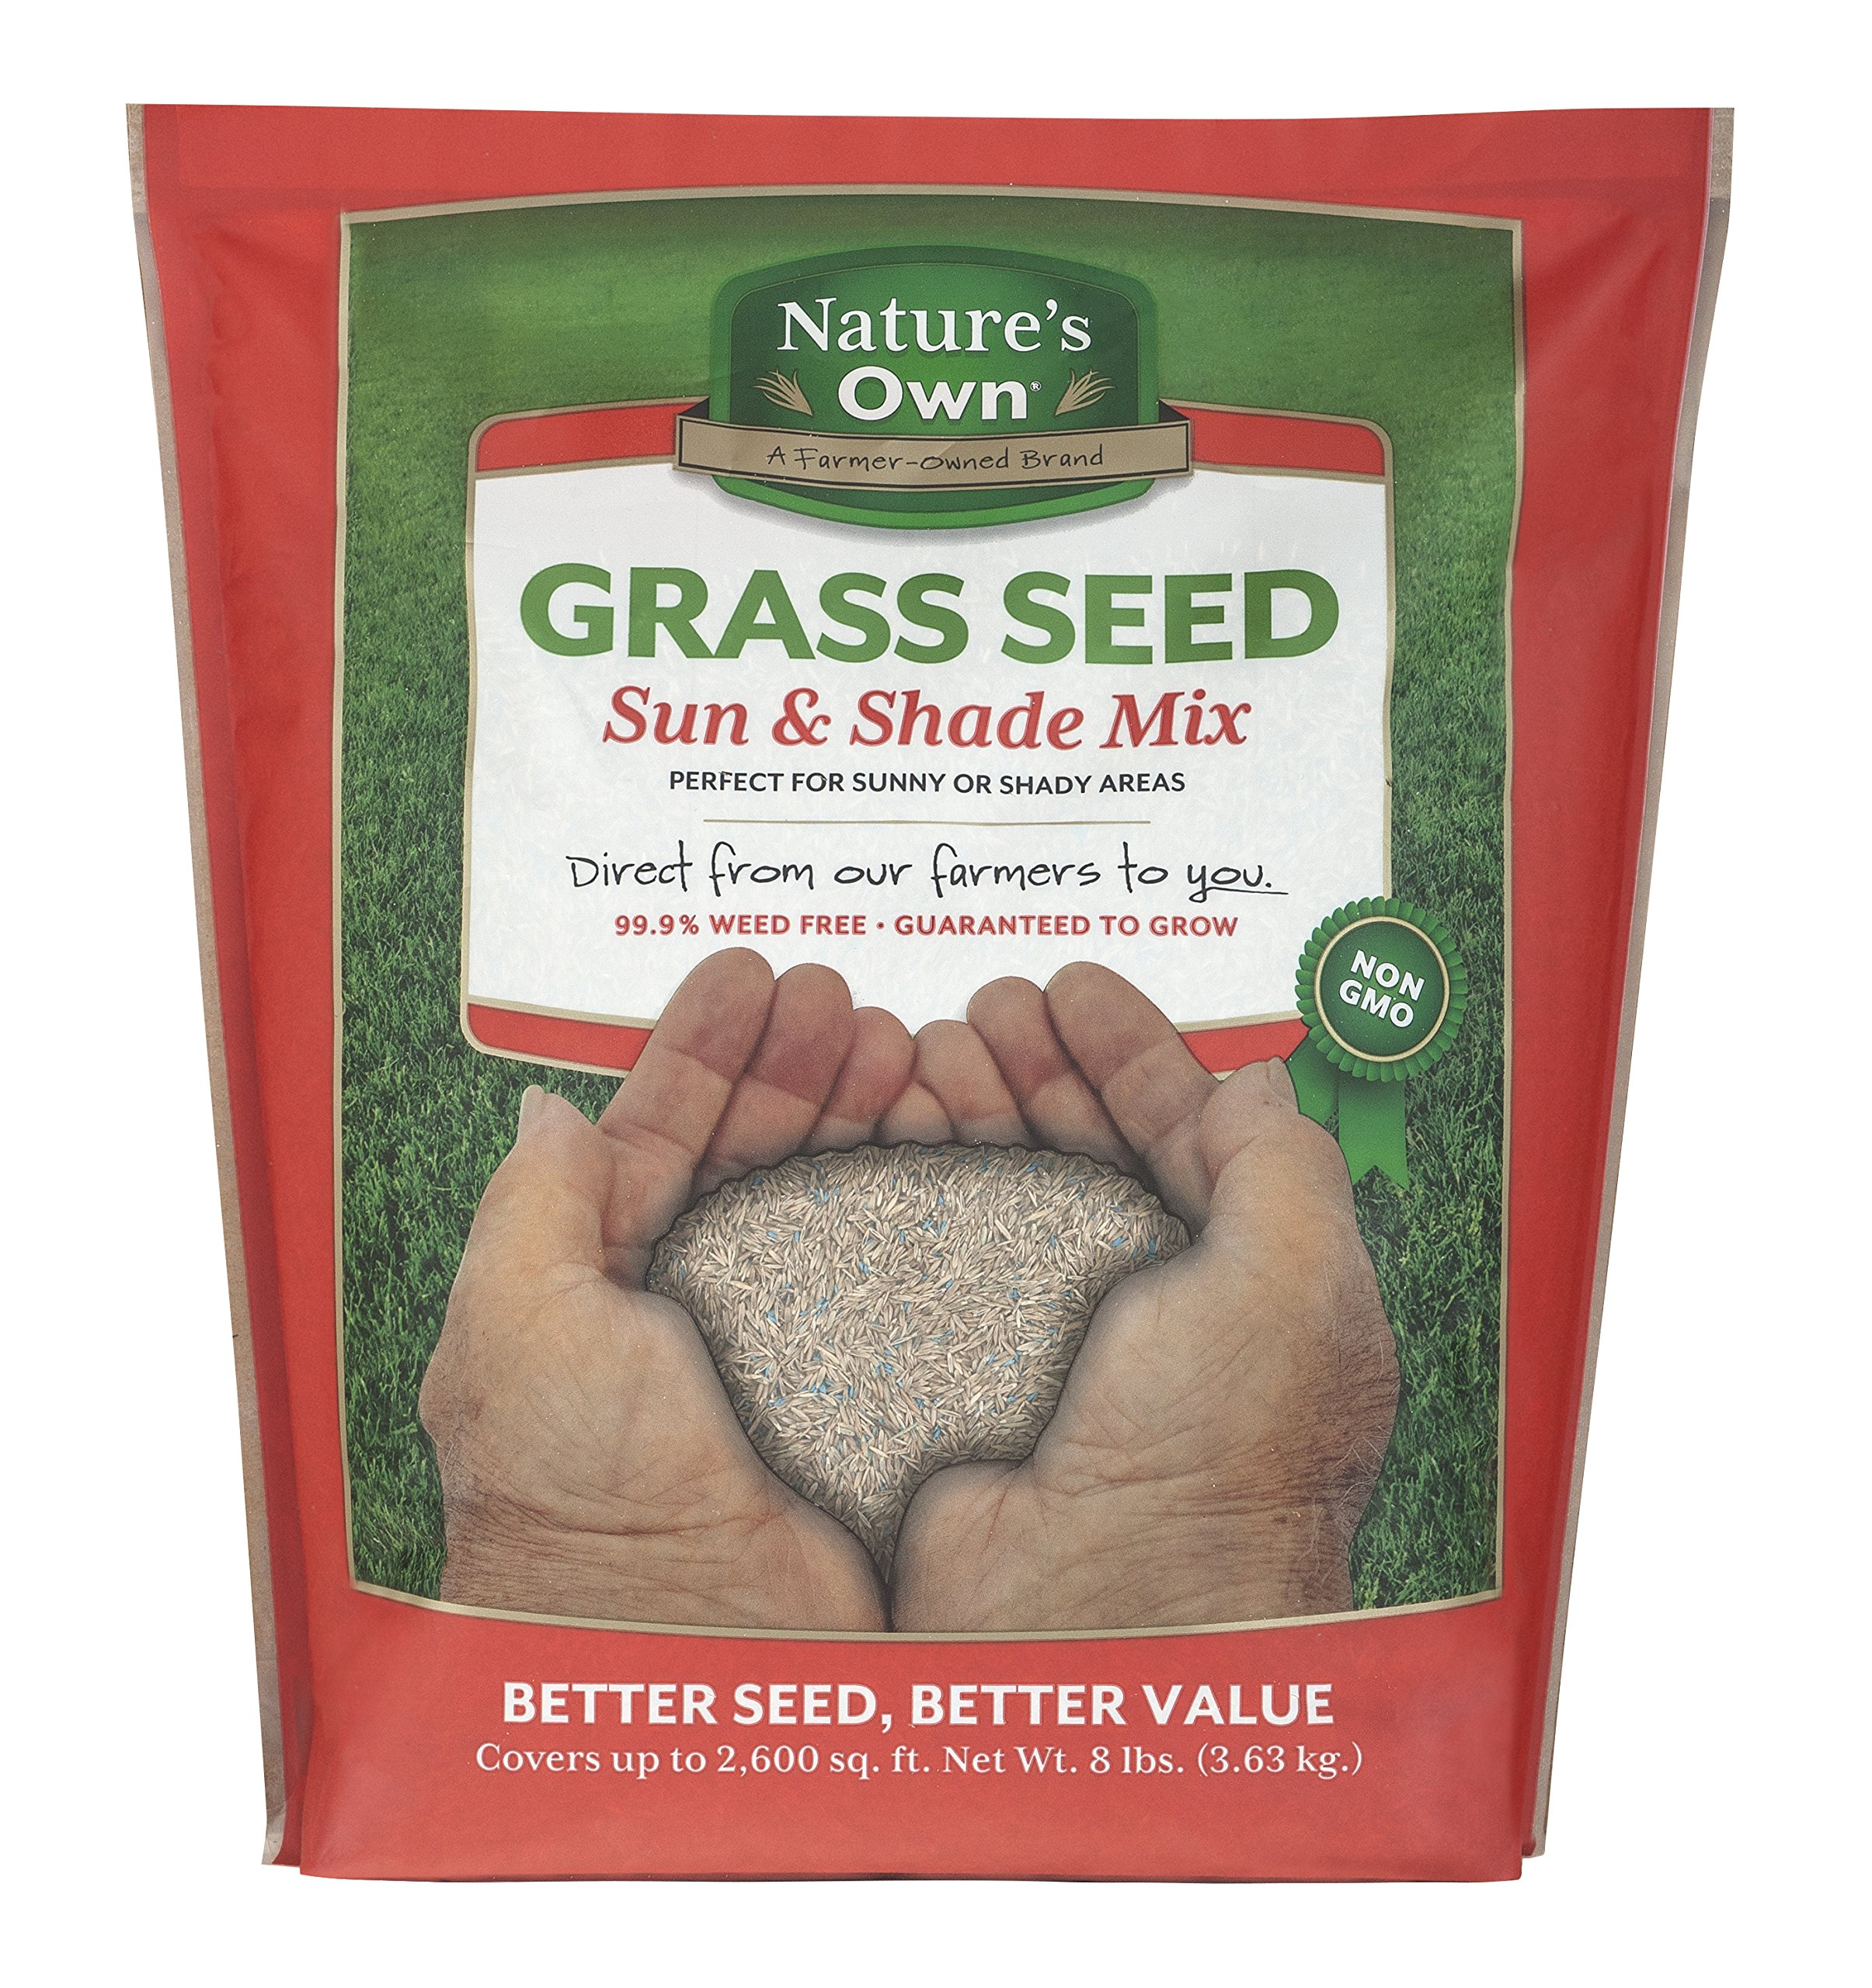 Mountain View Seeds Natures Own Sun & Shade Mix Grass Seed, 8-pounds by Mountain View Seed (Image #1)